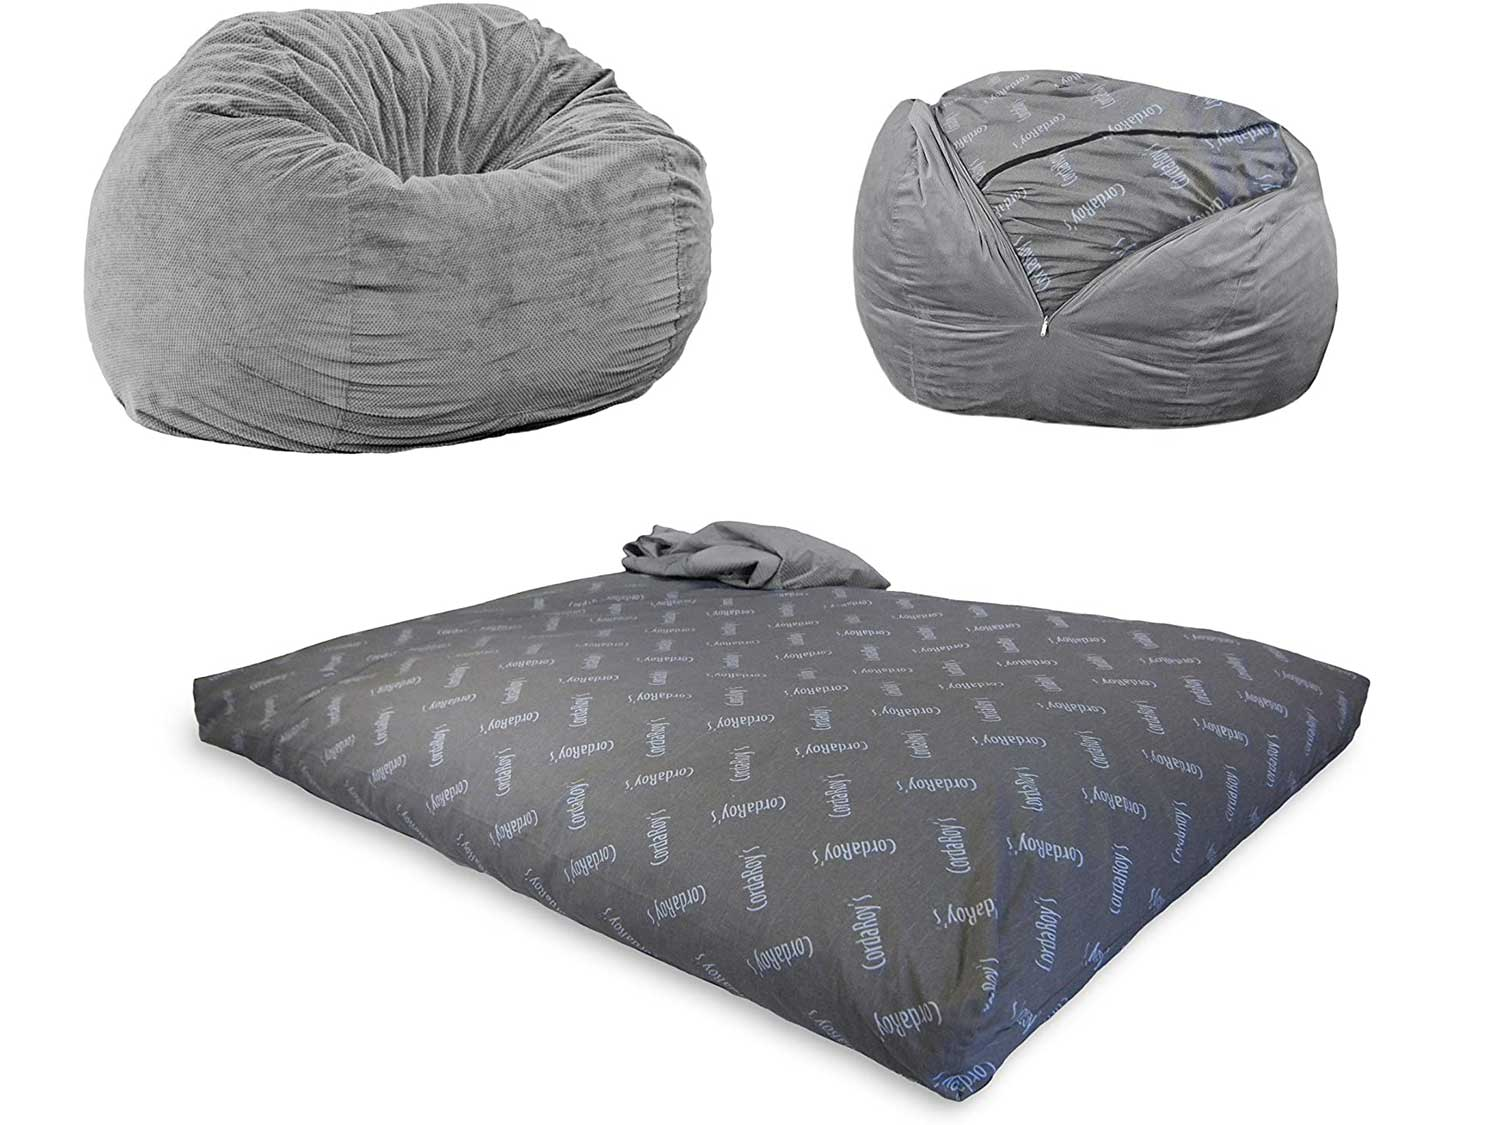 CordaRoy's - Charcoal Chenille Convertible Bean Bag Chair - Full